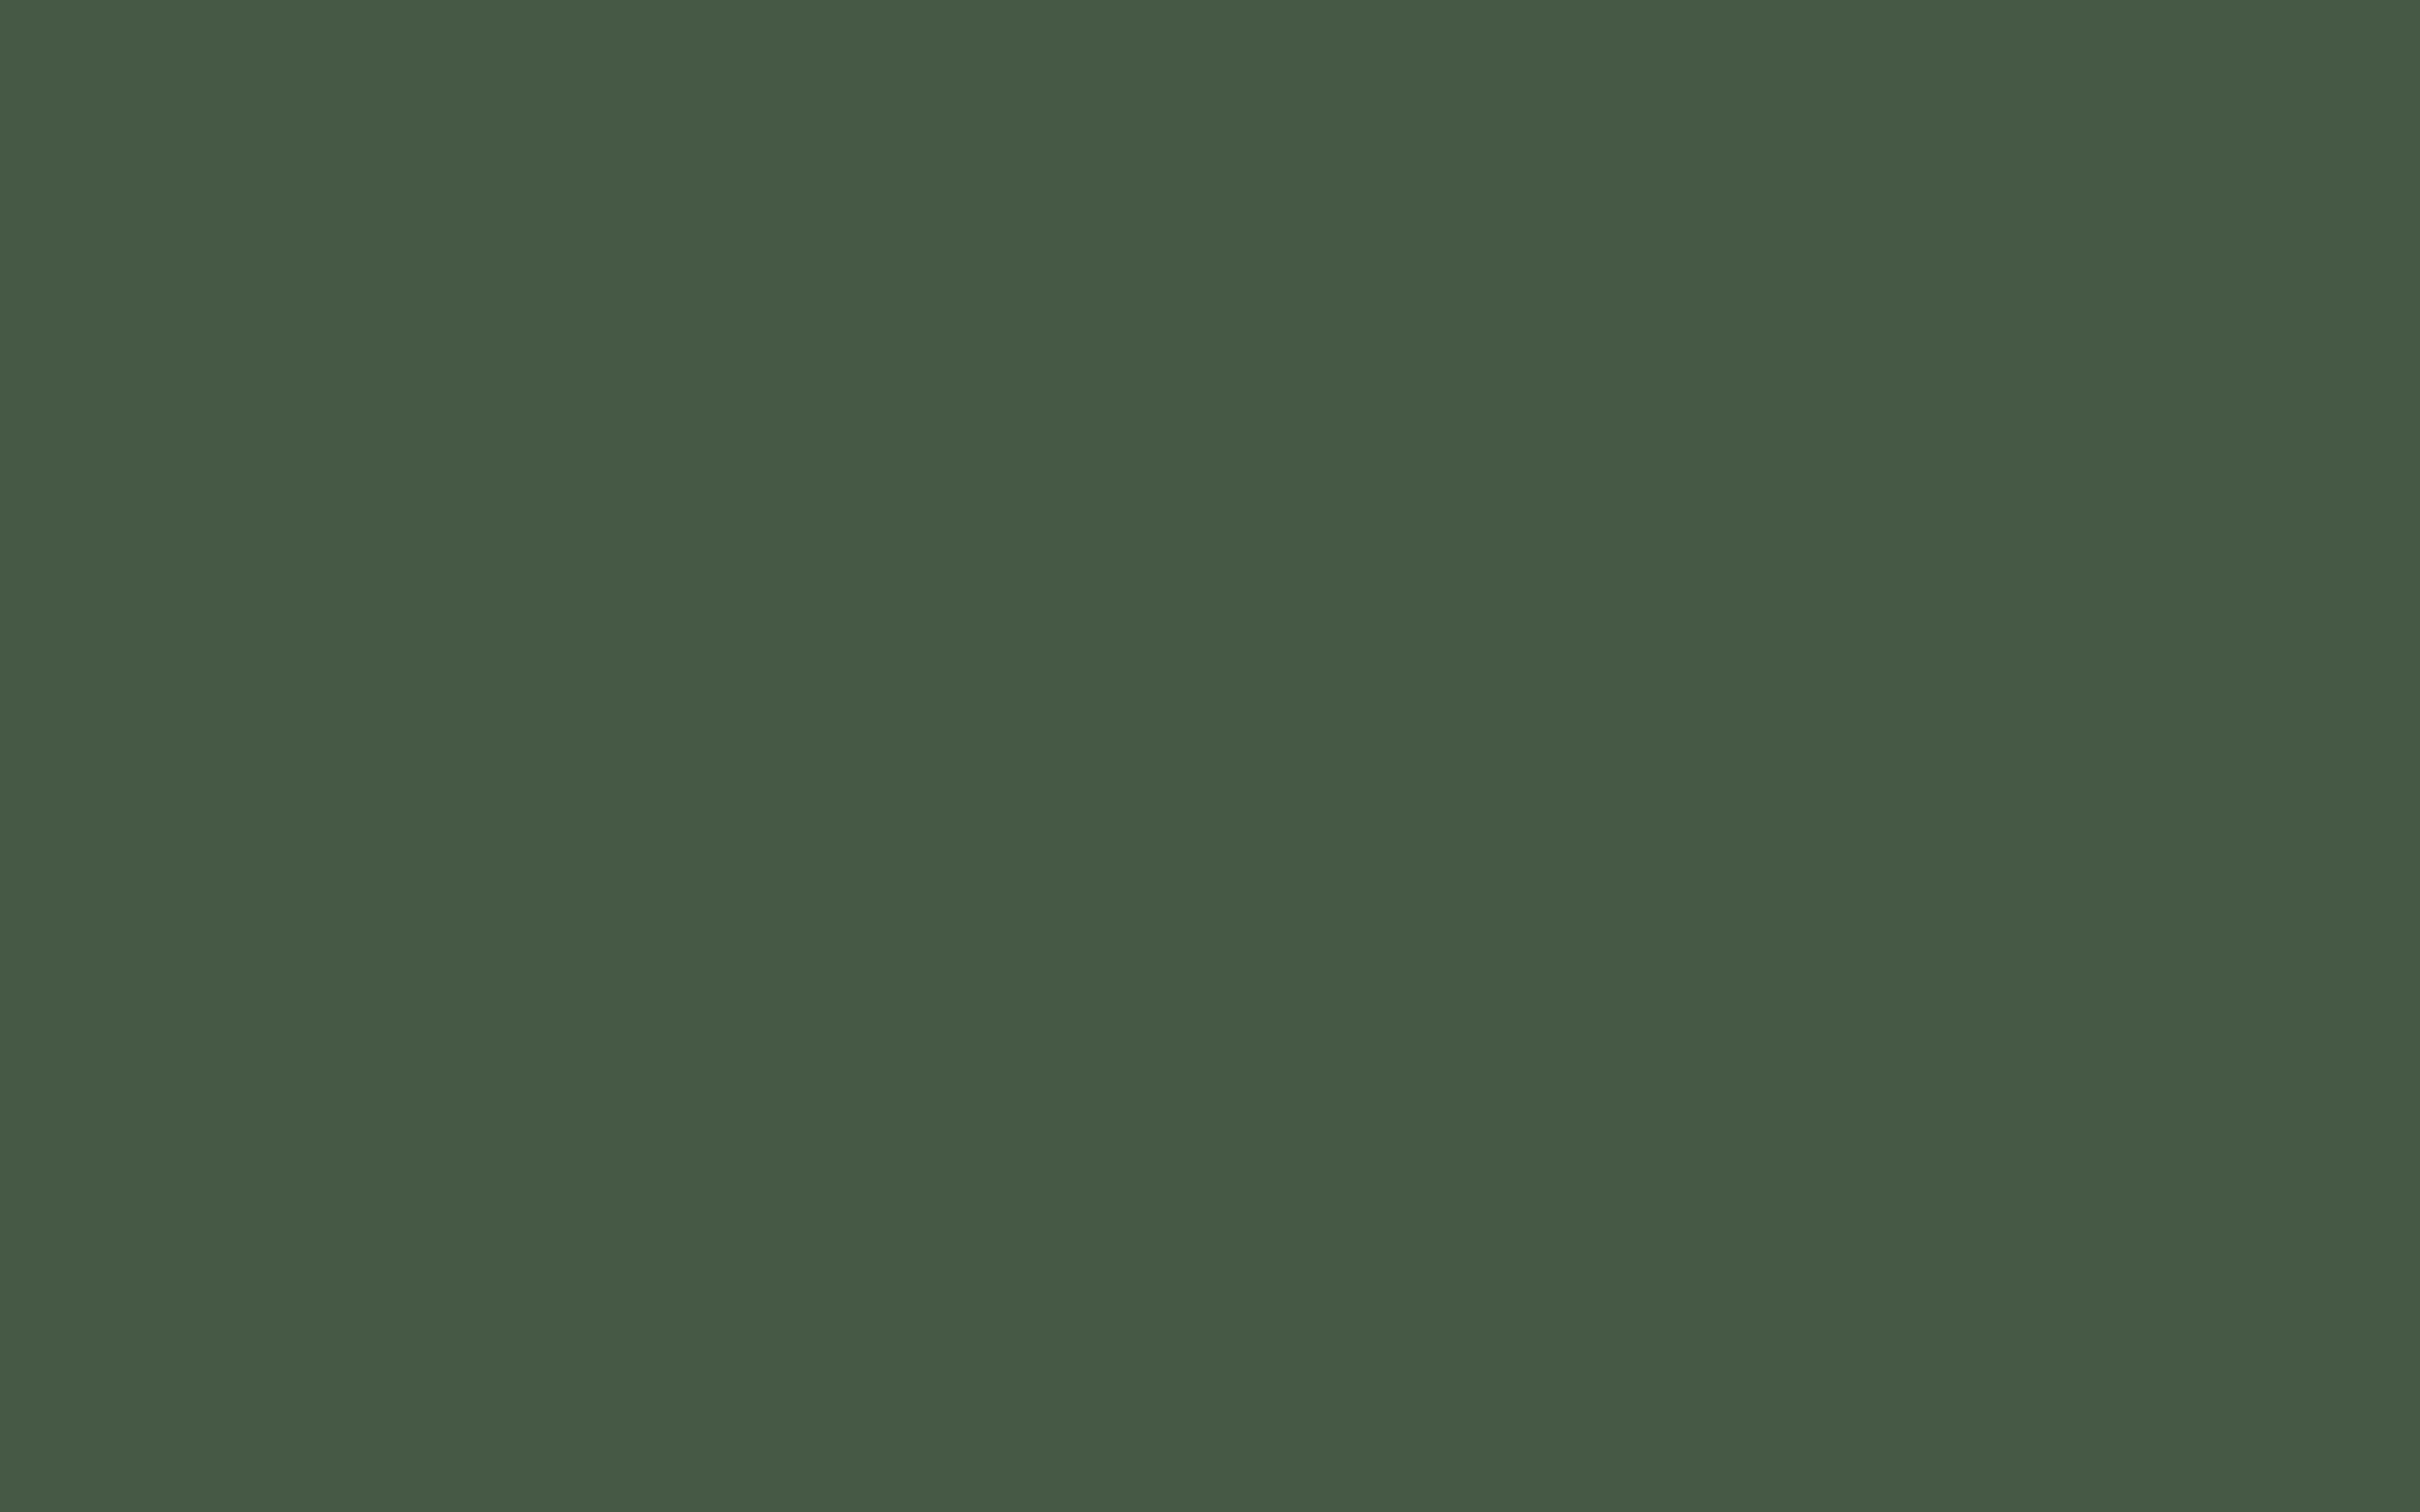 2560x1600 Gray-asparagus Solid Color Background